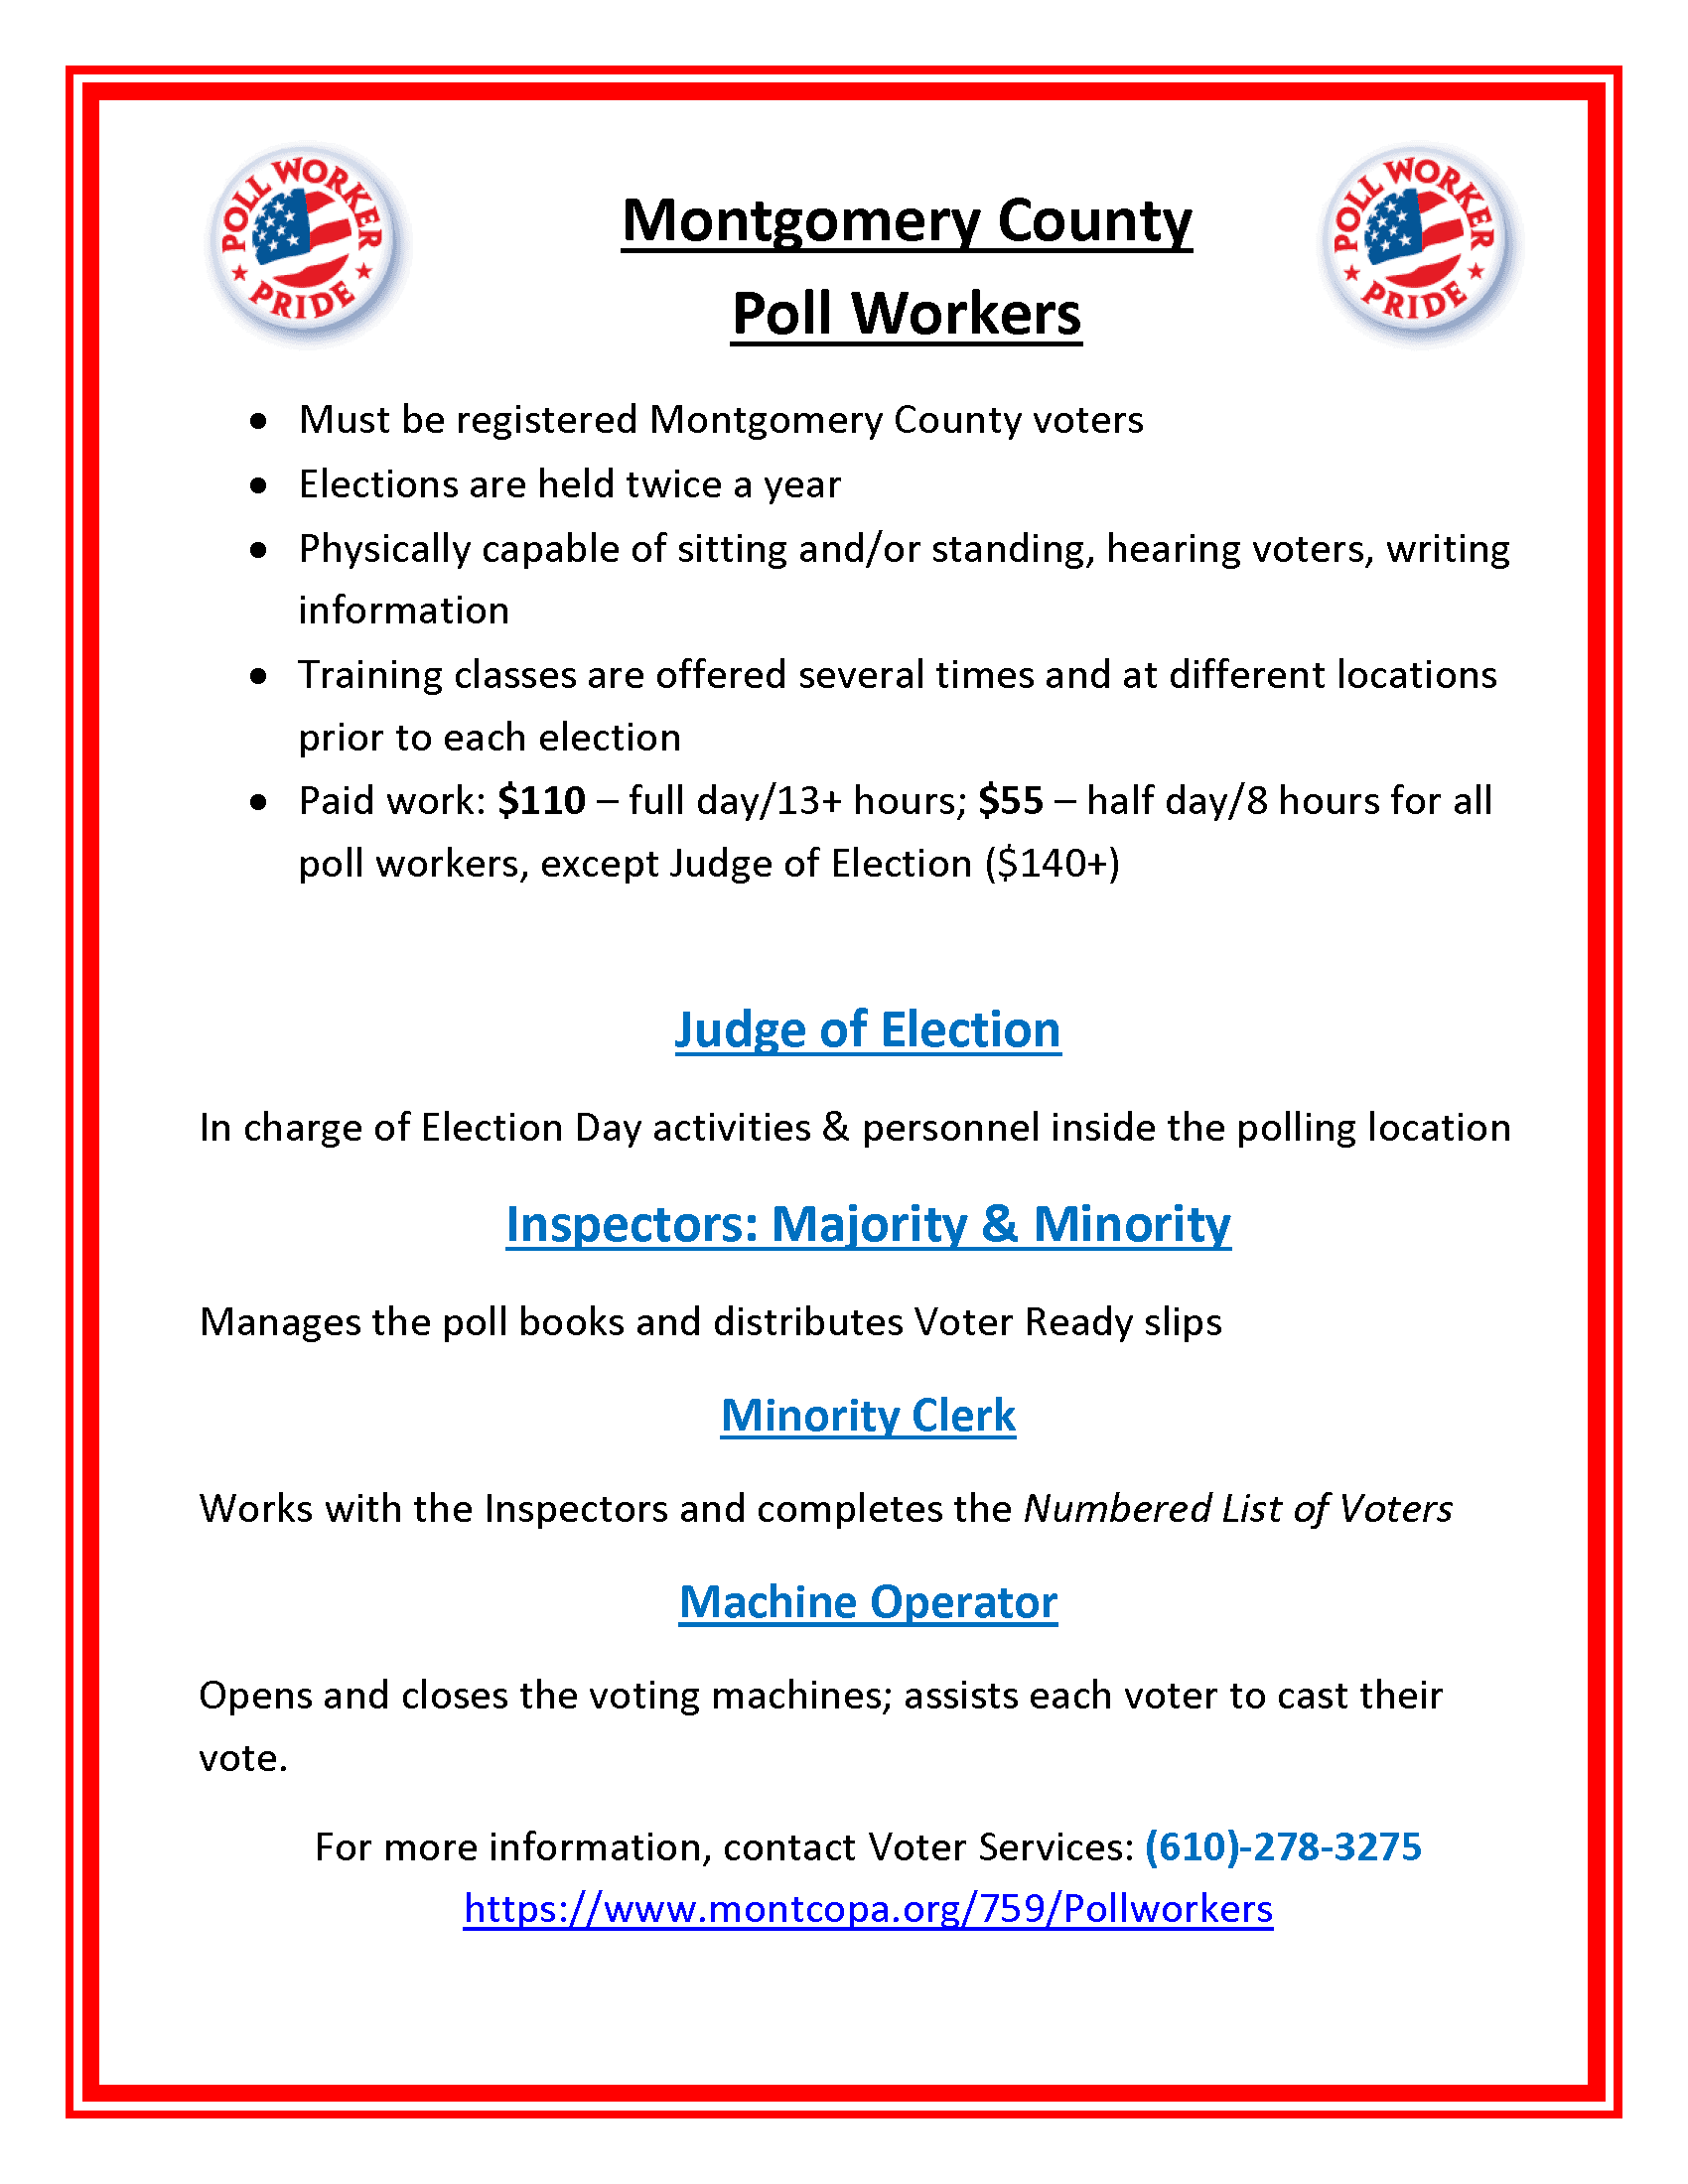 Pollworkers Montgomery County Pa Official Website